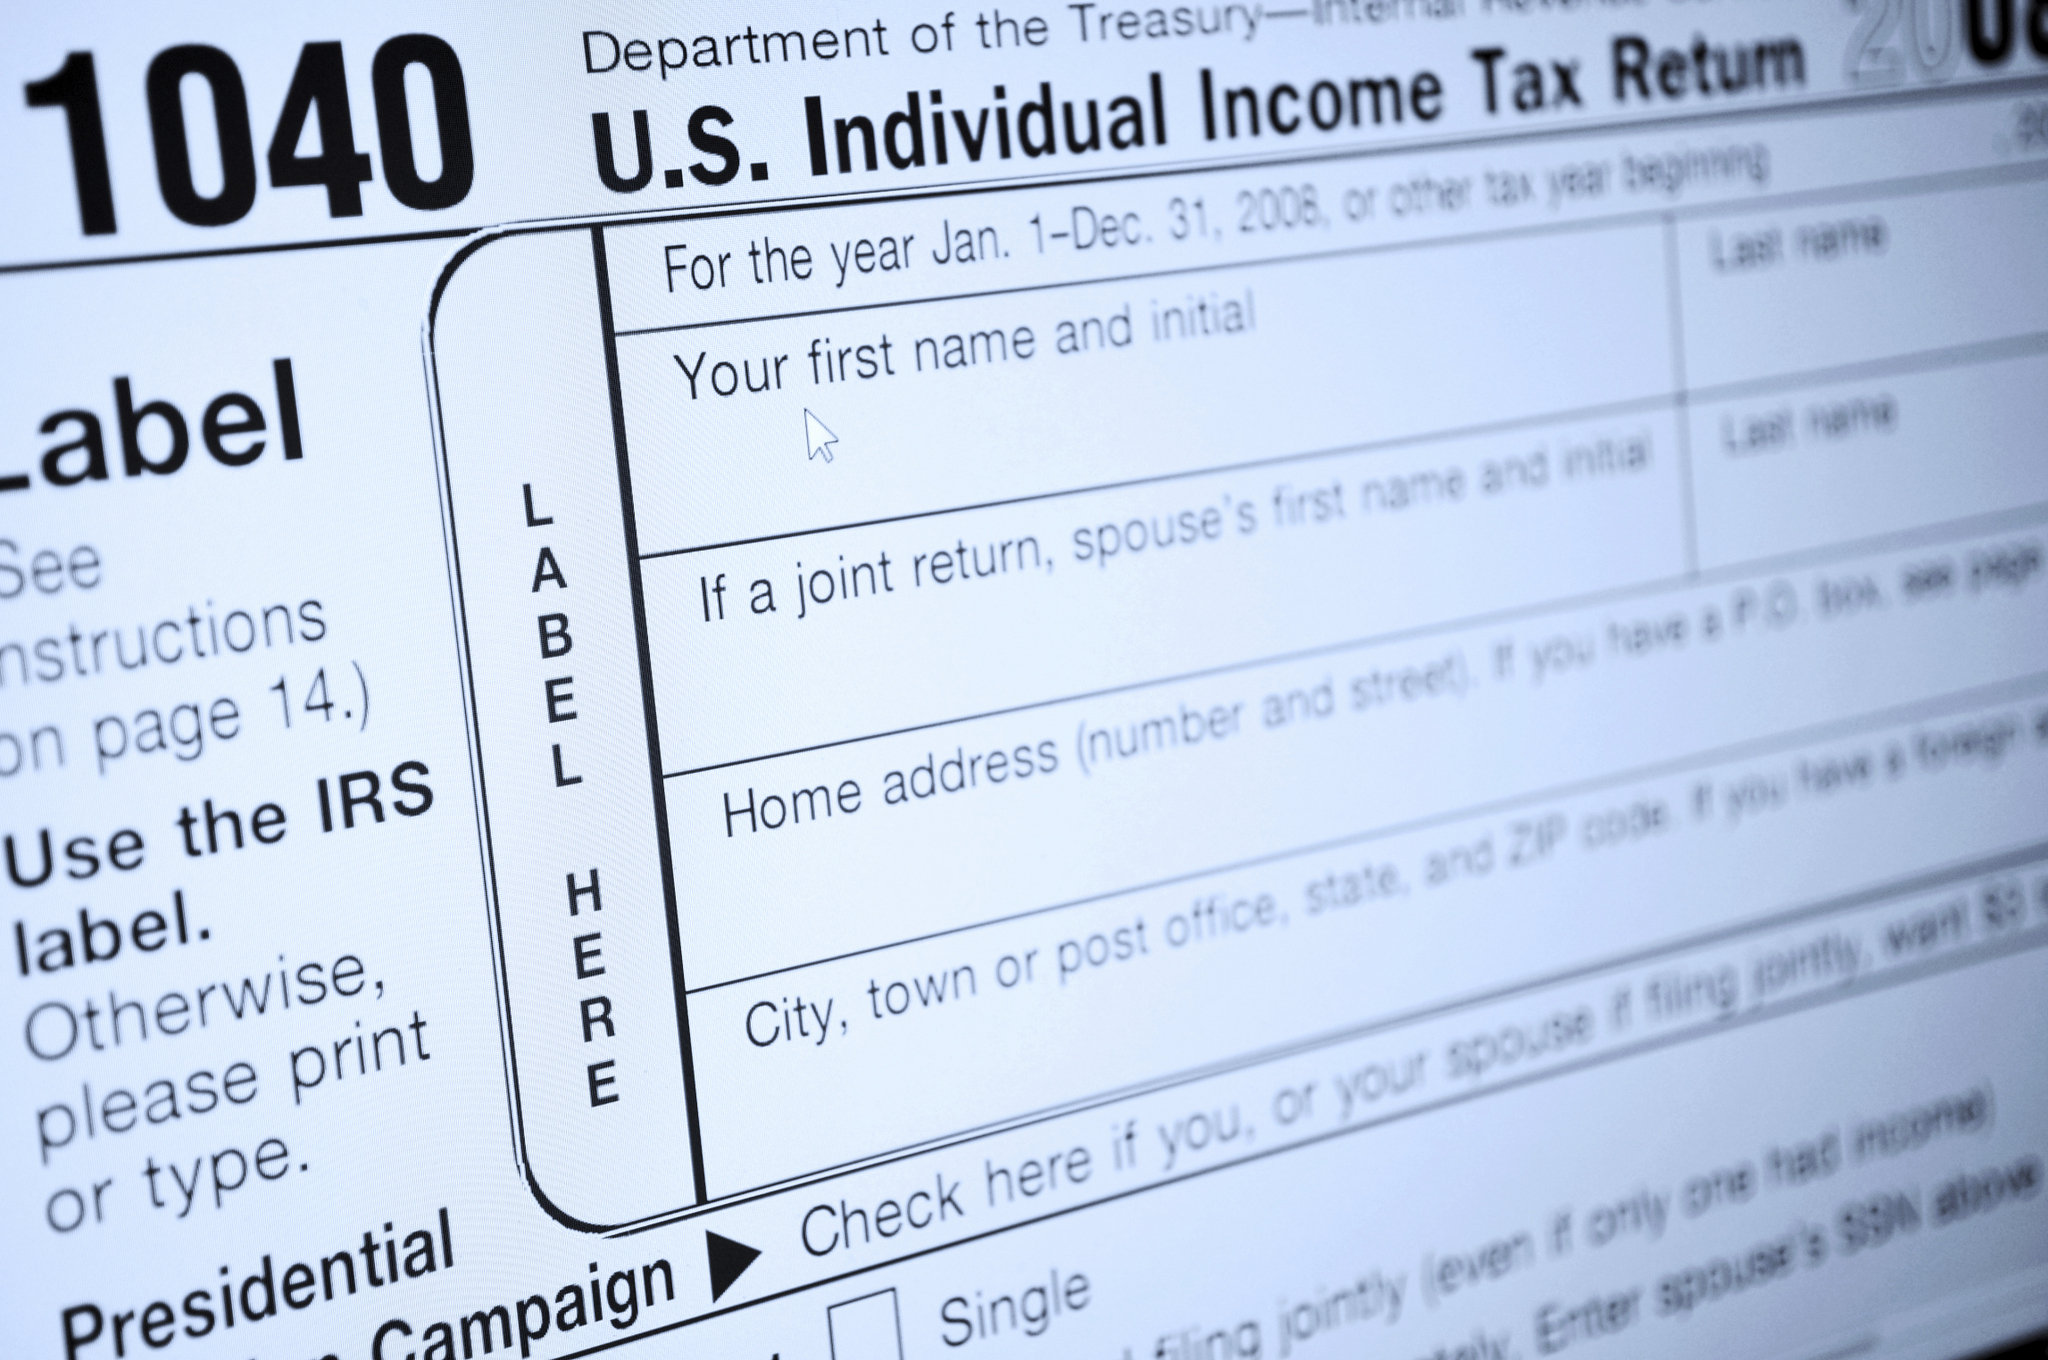 tax filing mistake - Social Security Number